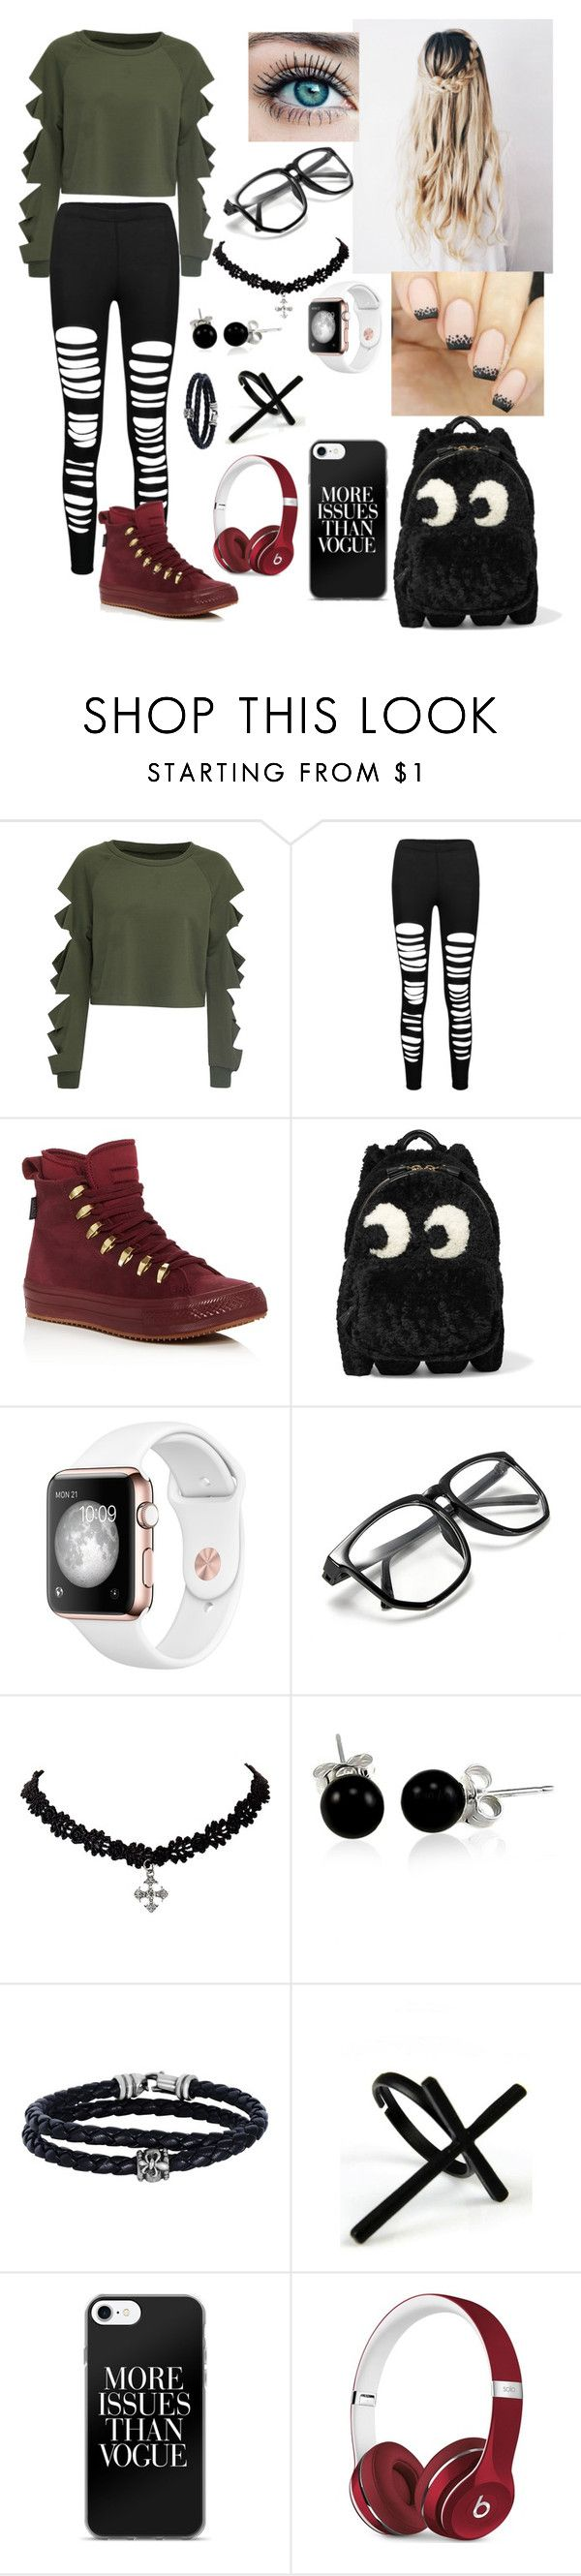 """#Hipster4"" by cj-cat ❤ liked on Polyvore featuring WithChic, Converse, Anya Hindmarch, Bling Jewelry, Phillip Gavriel, Emi Jewellery and Beats by Dr. Dre"